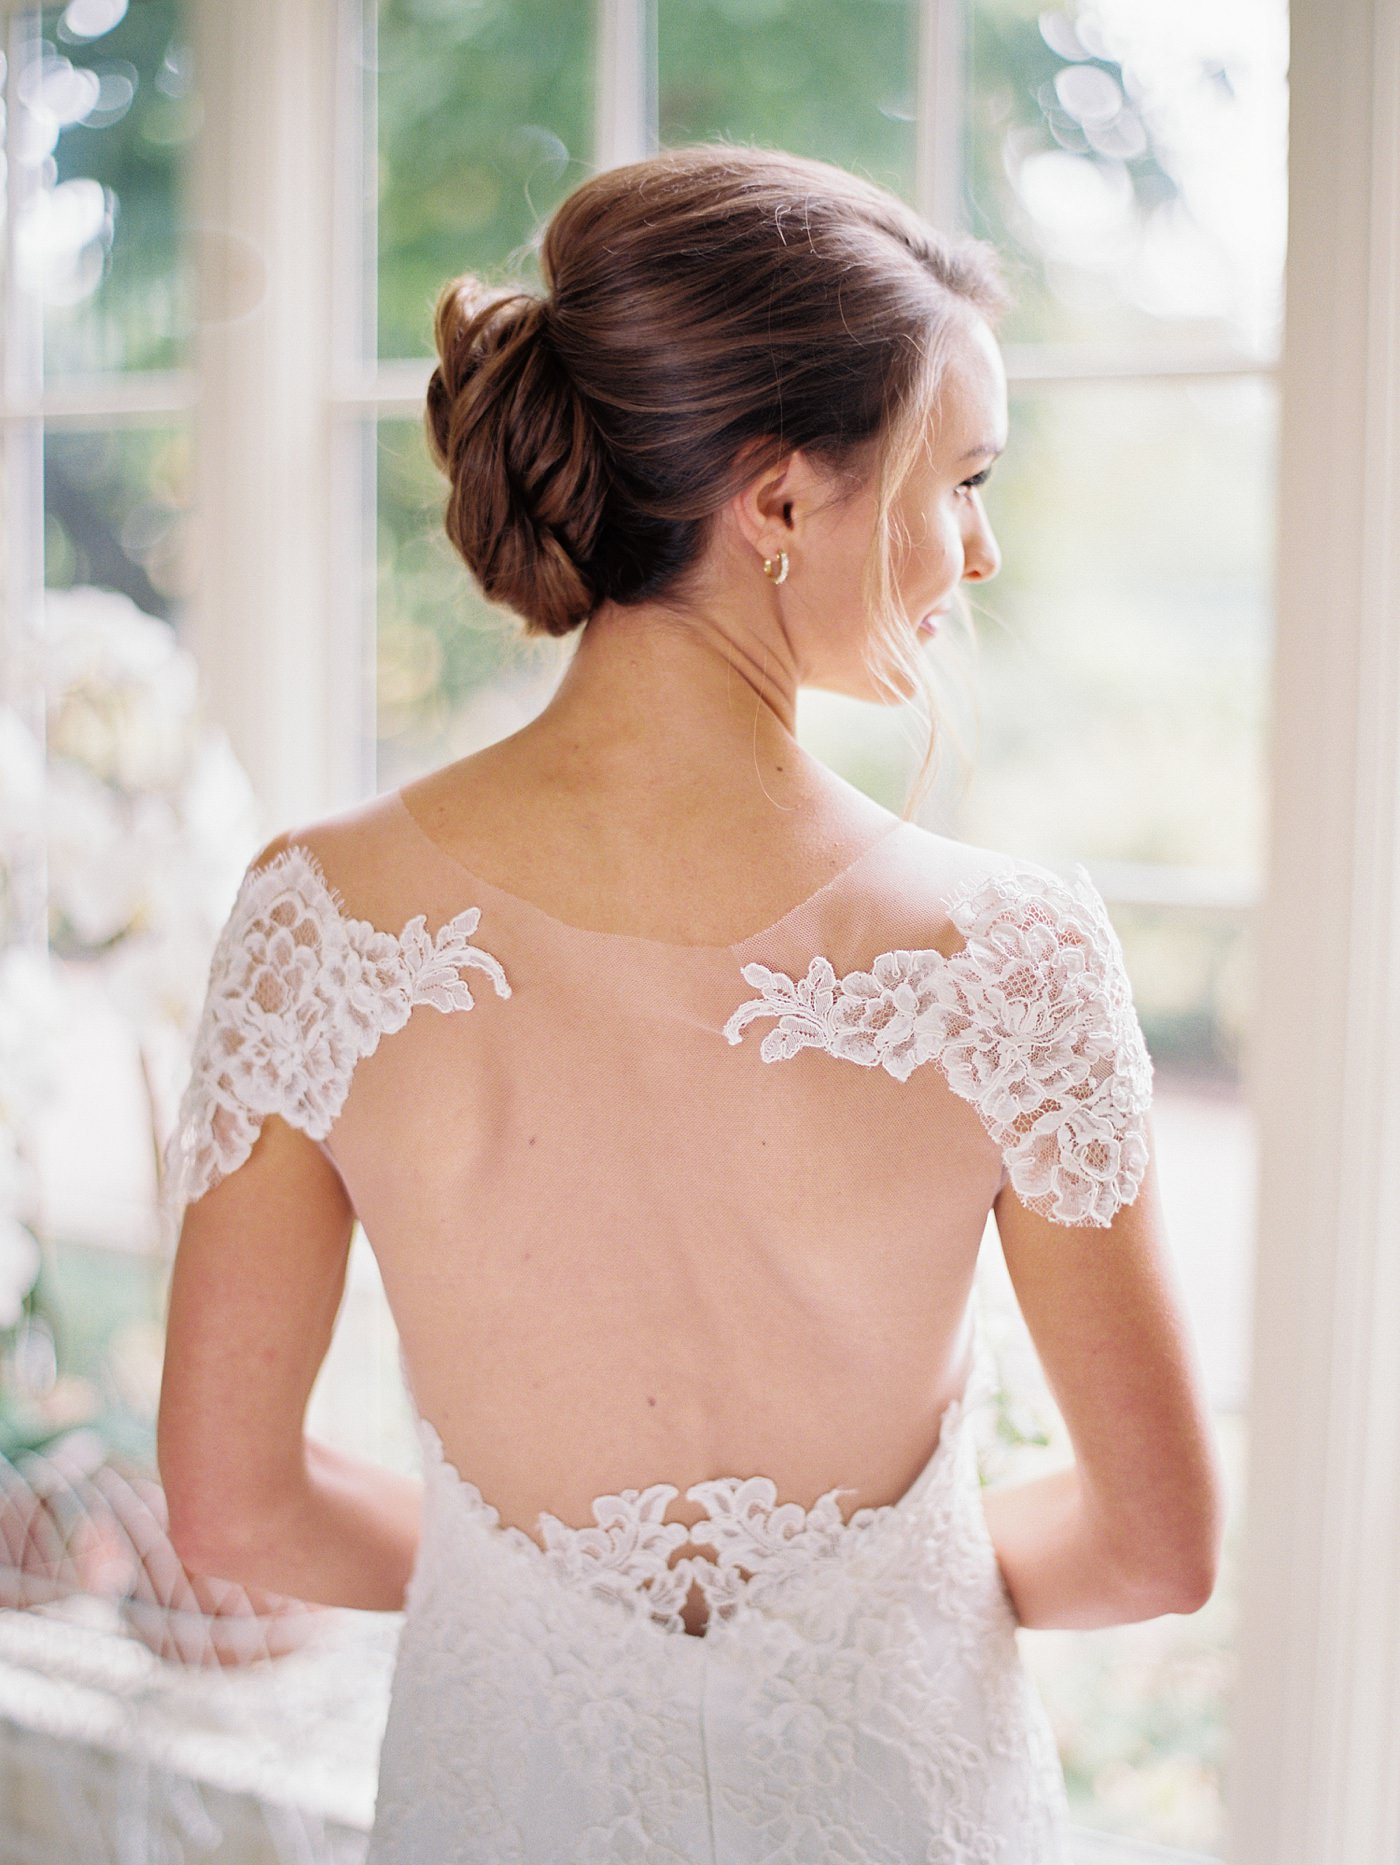 gorgeous wedding dress details